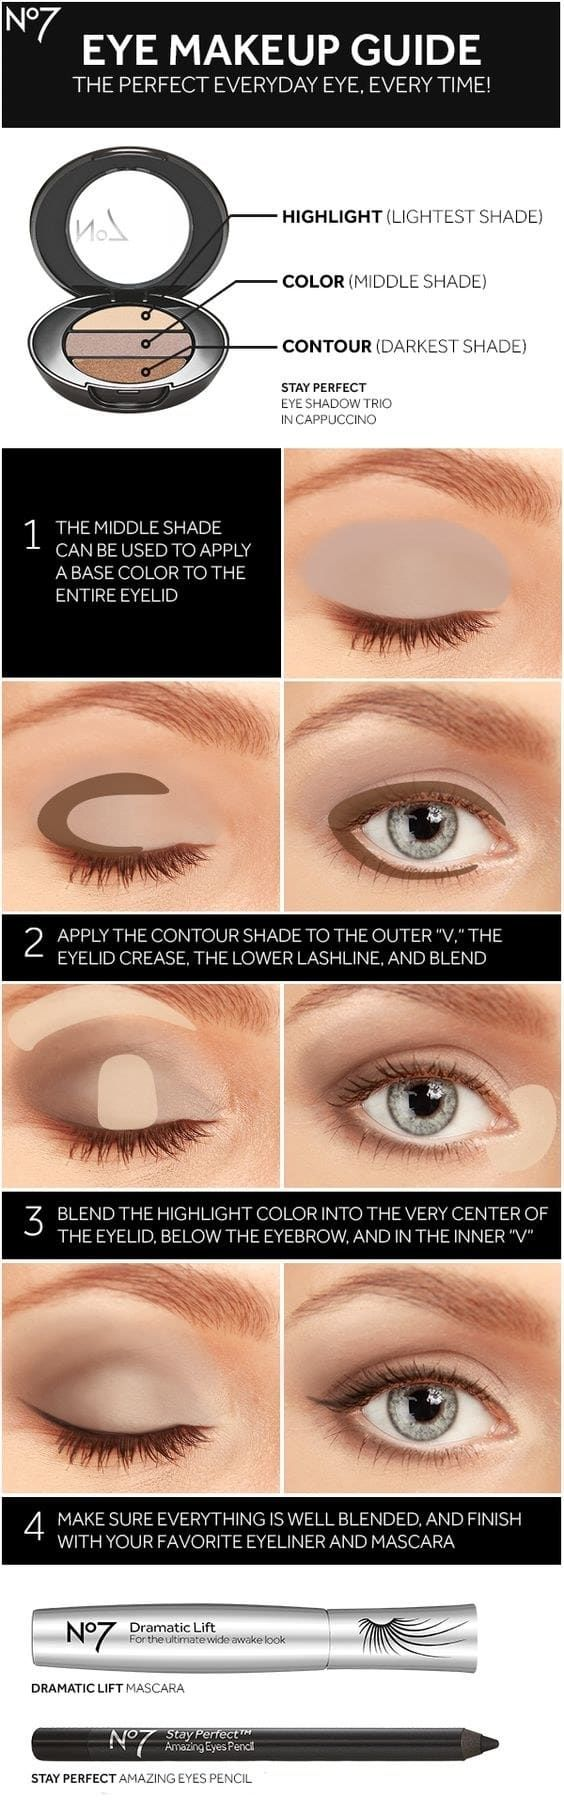 eye makeup guide - 7 ridiculously easy makeup tips that will simplify your life